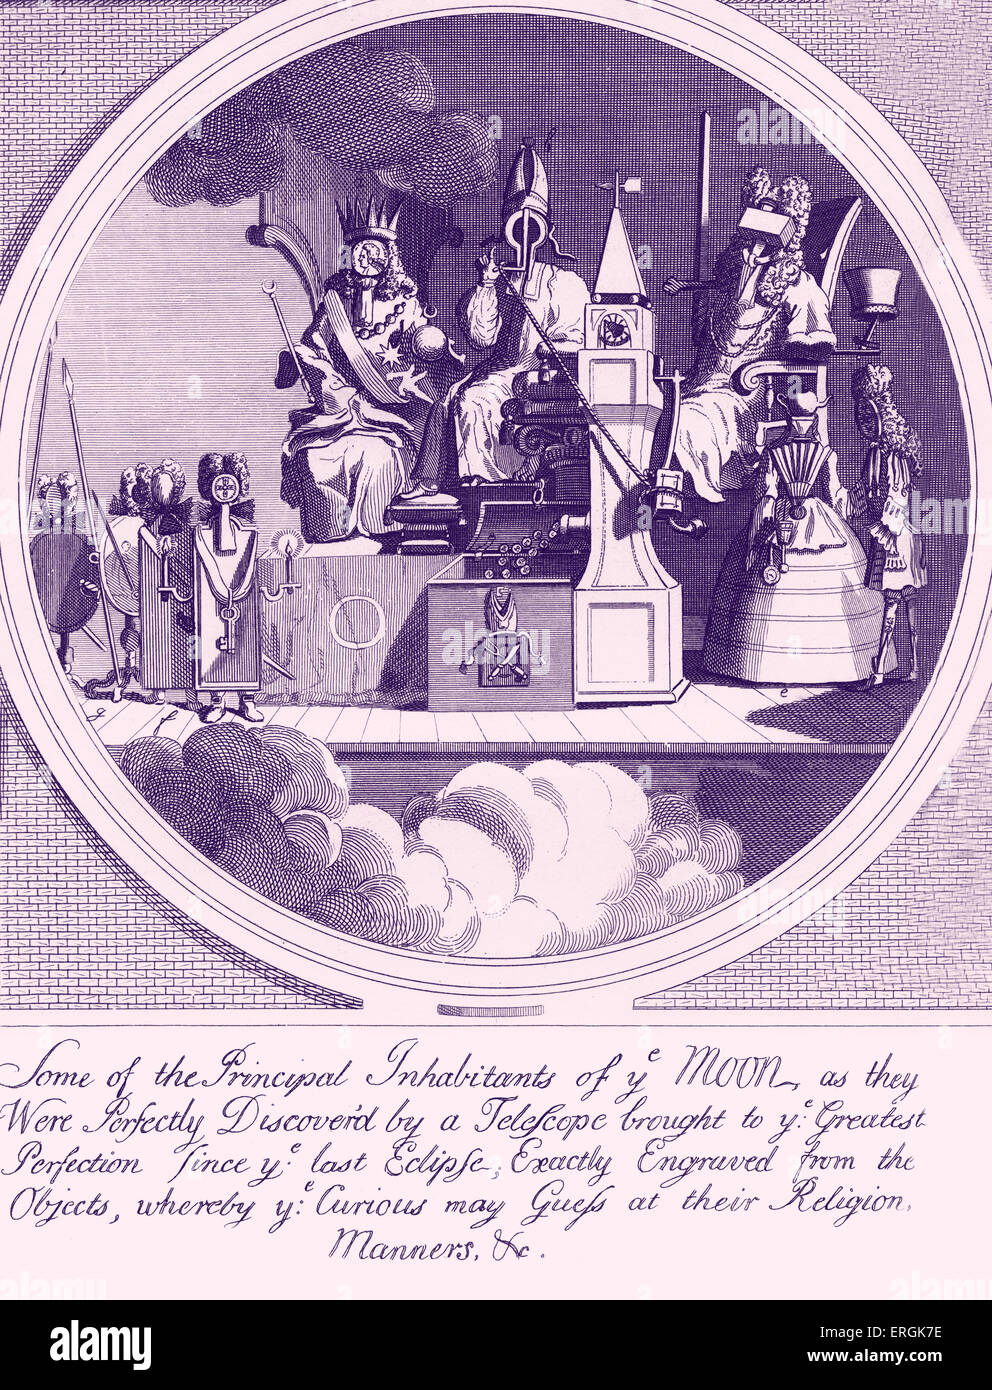 Royalty, Episcopacy, and Law  by W. Hogarth 1724 Caption reads: Some of the Principal Inhabitants of ye Moon, as - Stock Image